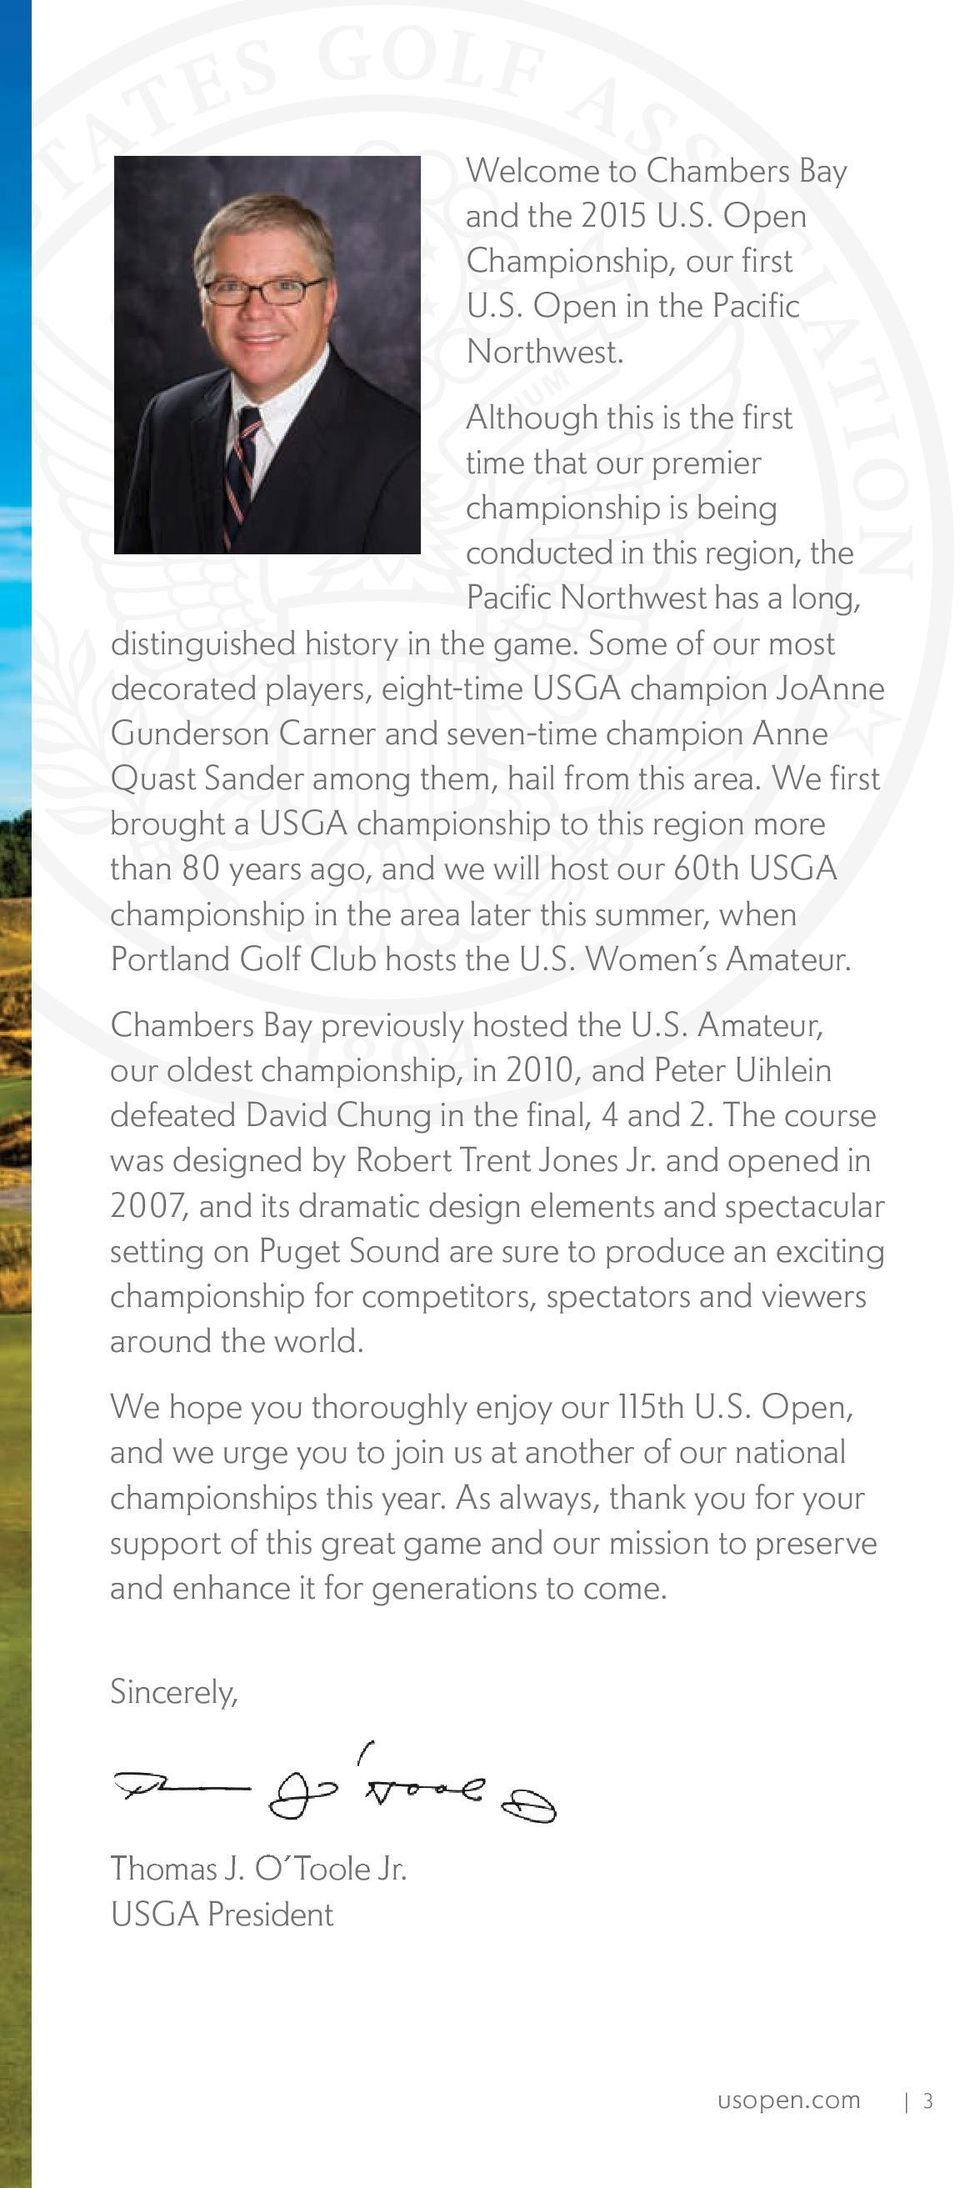 115th Us Open Championship Pdf Sound Source Locator Uses Prechamp Some Of Our Most Decorated Players Eight Time Usga Champion Joanne Gunderson Carner And